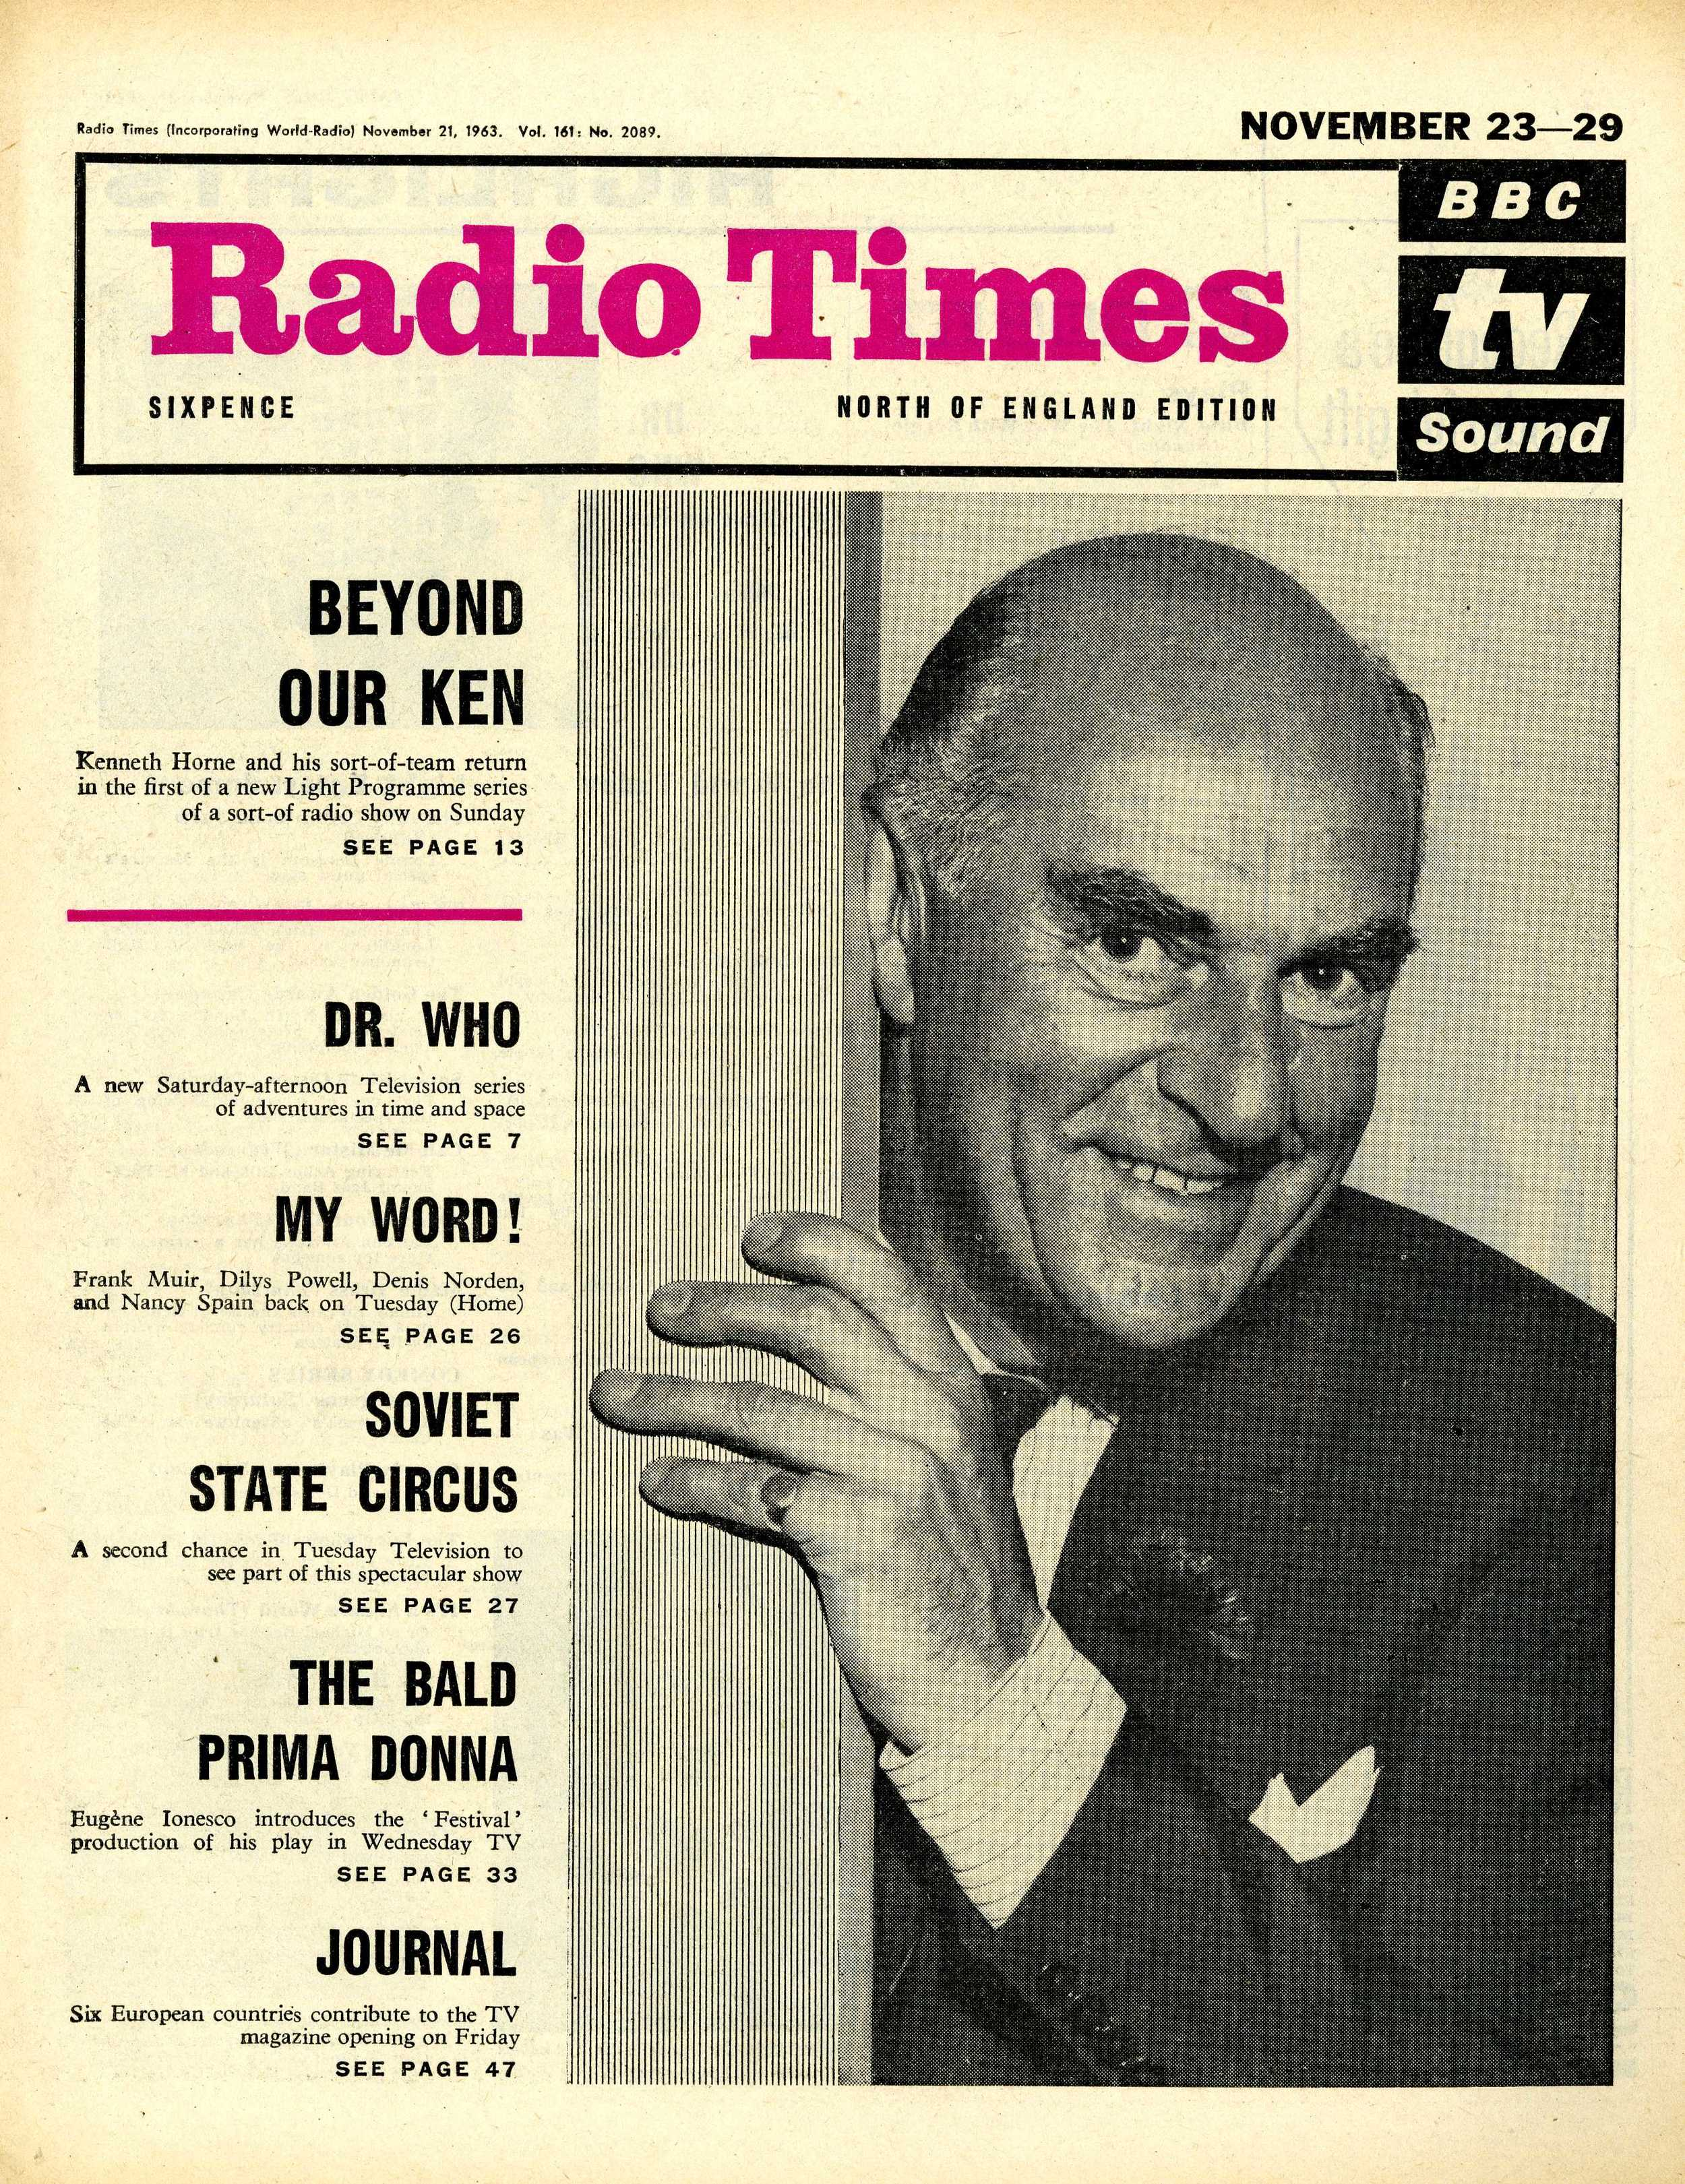 Radio Times, 23-29 November 1963 with  cover announcement for the first episode